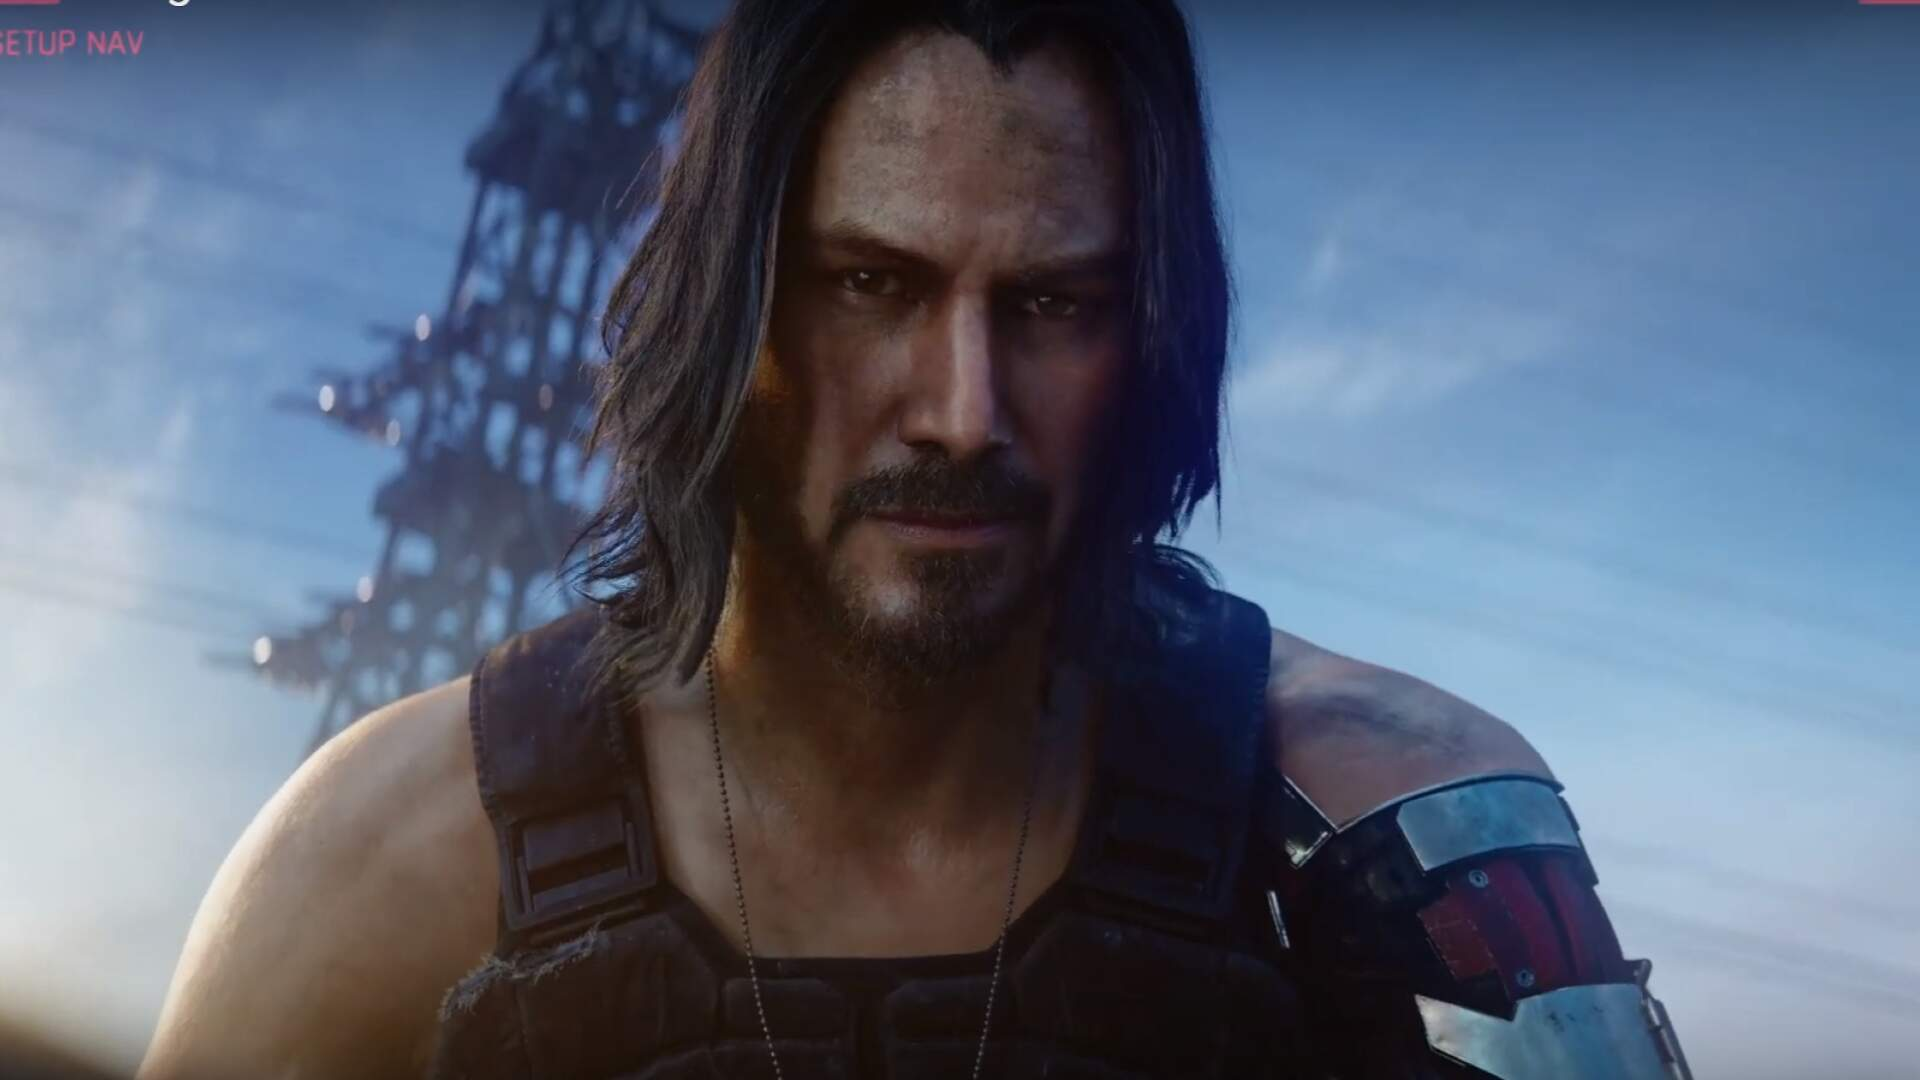 Cyberpunk 2077 Stadia, Release Date, Keanu Reeves, Trailers - Everything we Know